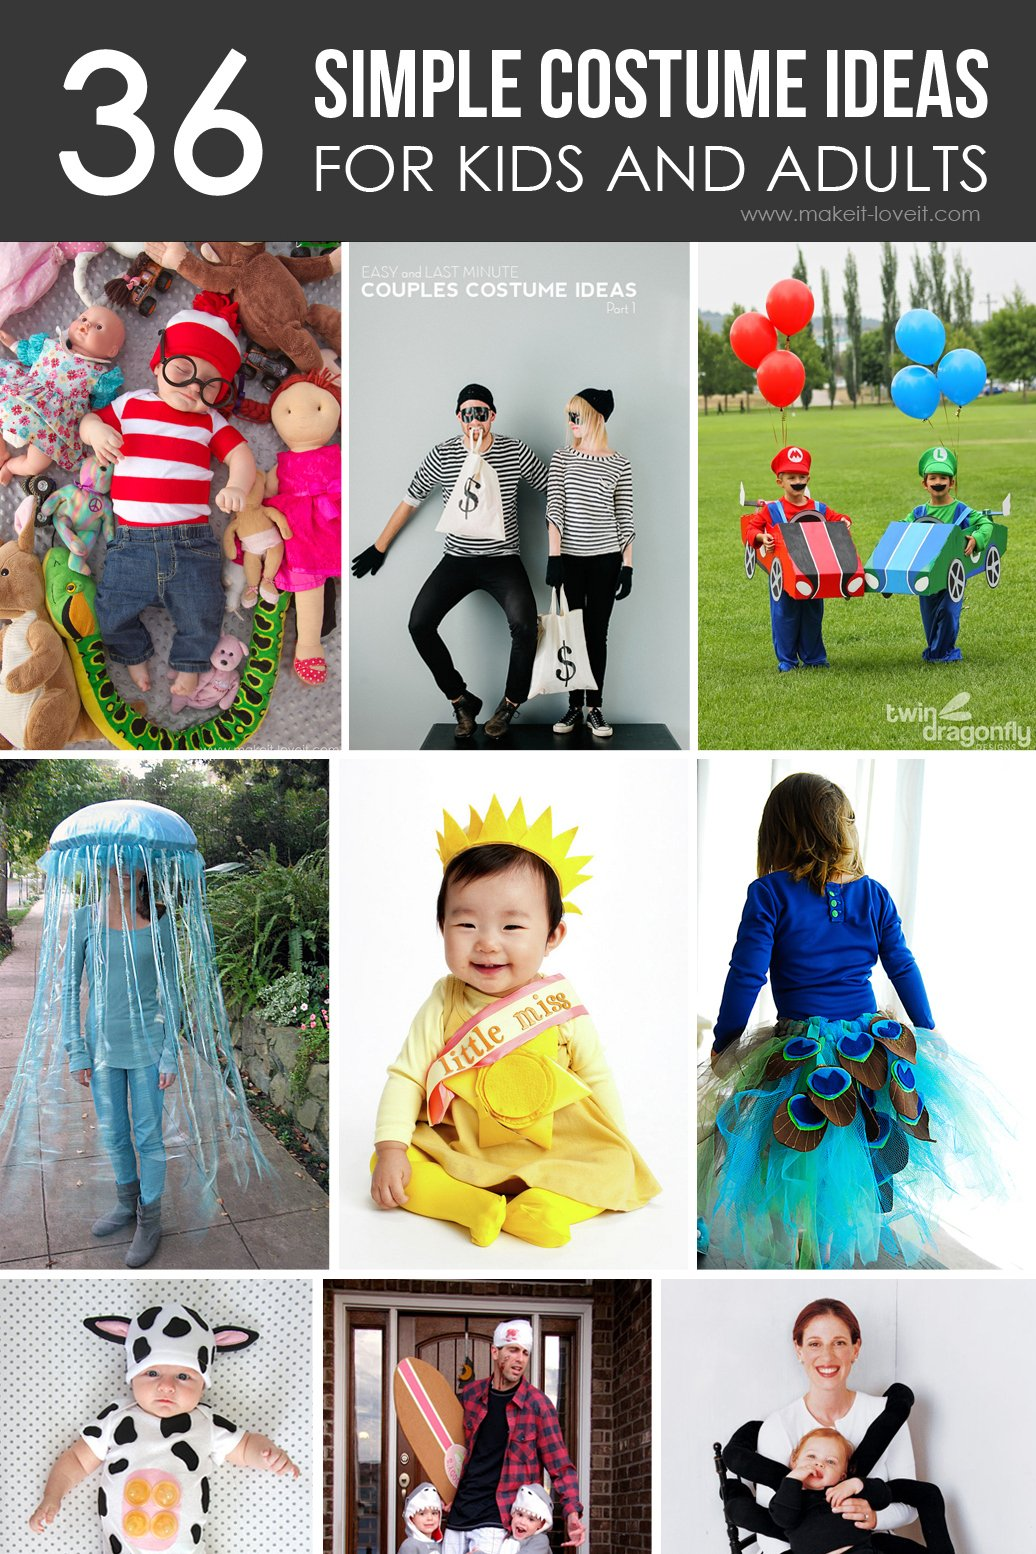 36 simple costume ideas for kids and adults